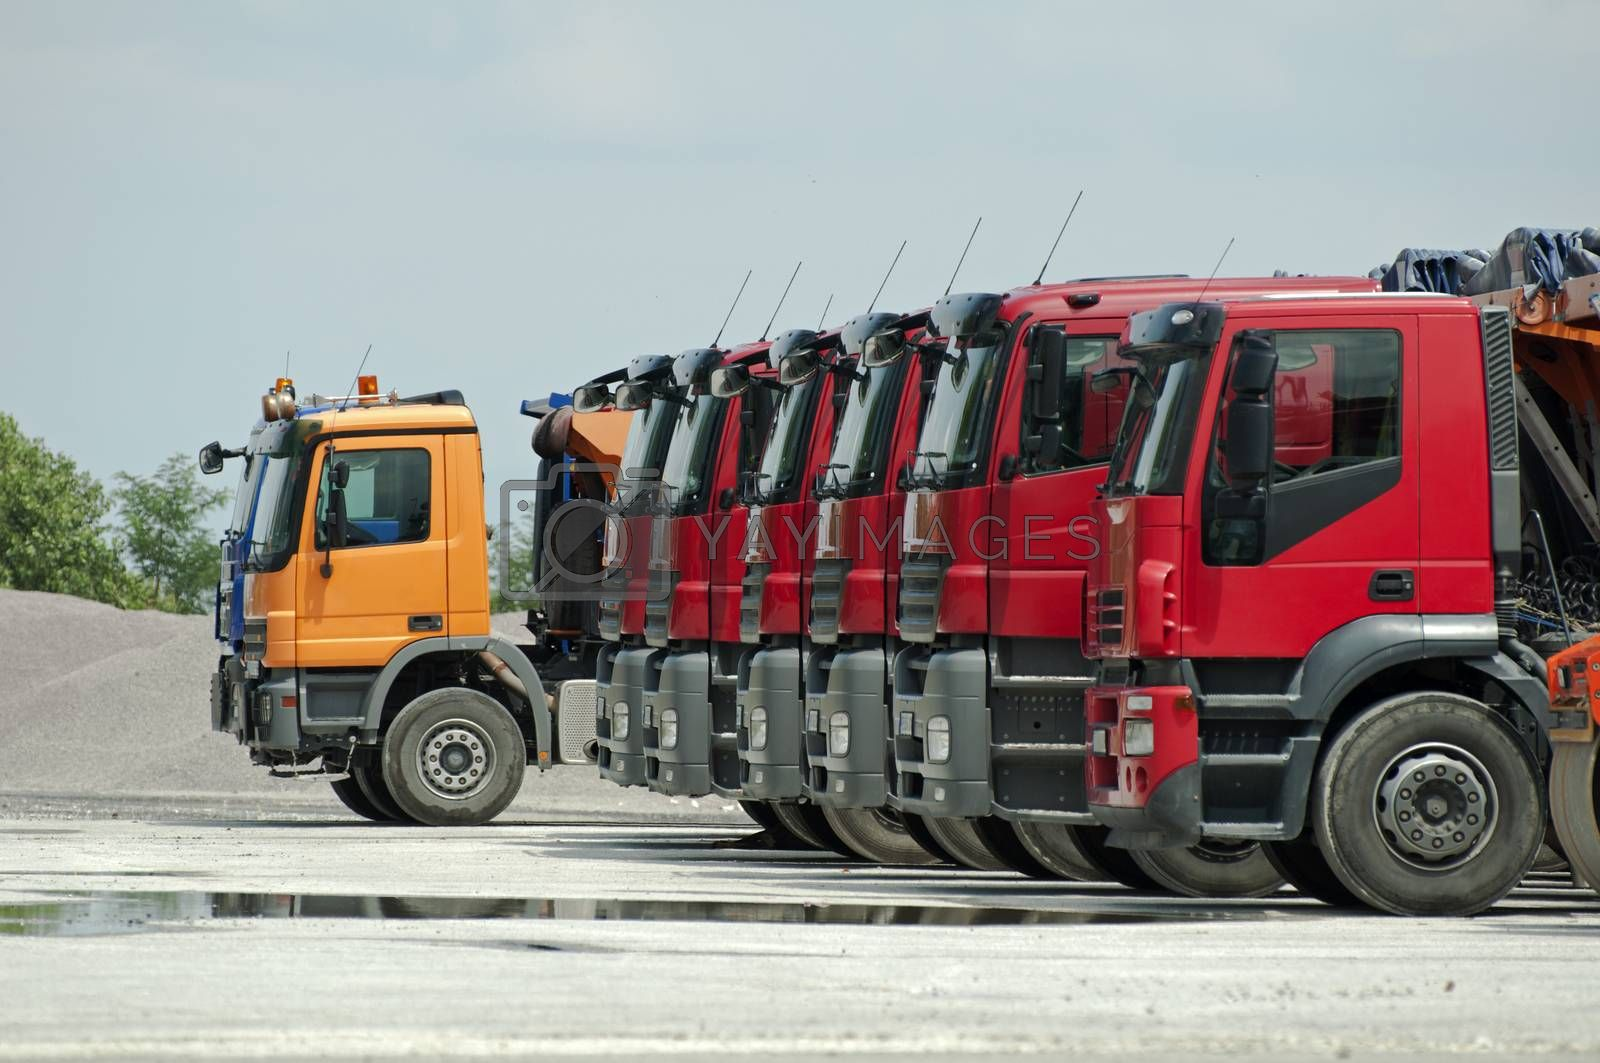 Trucks, rollers and machinery for asphalting. Horizontal image